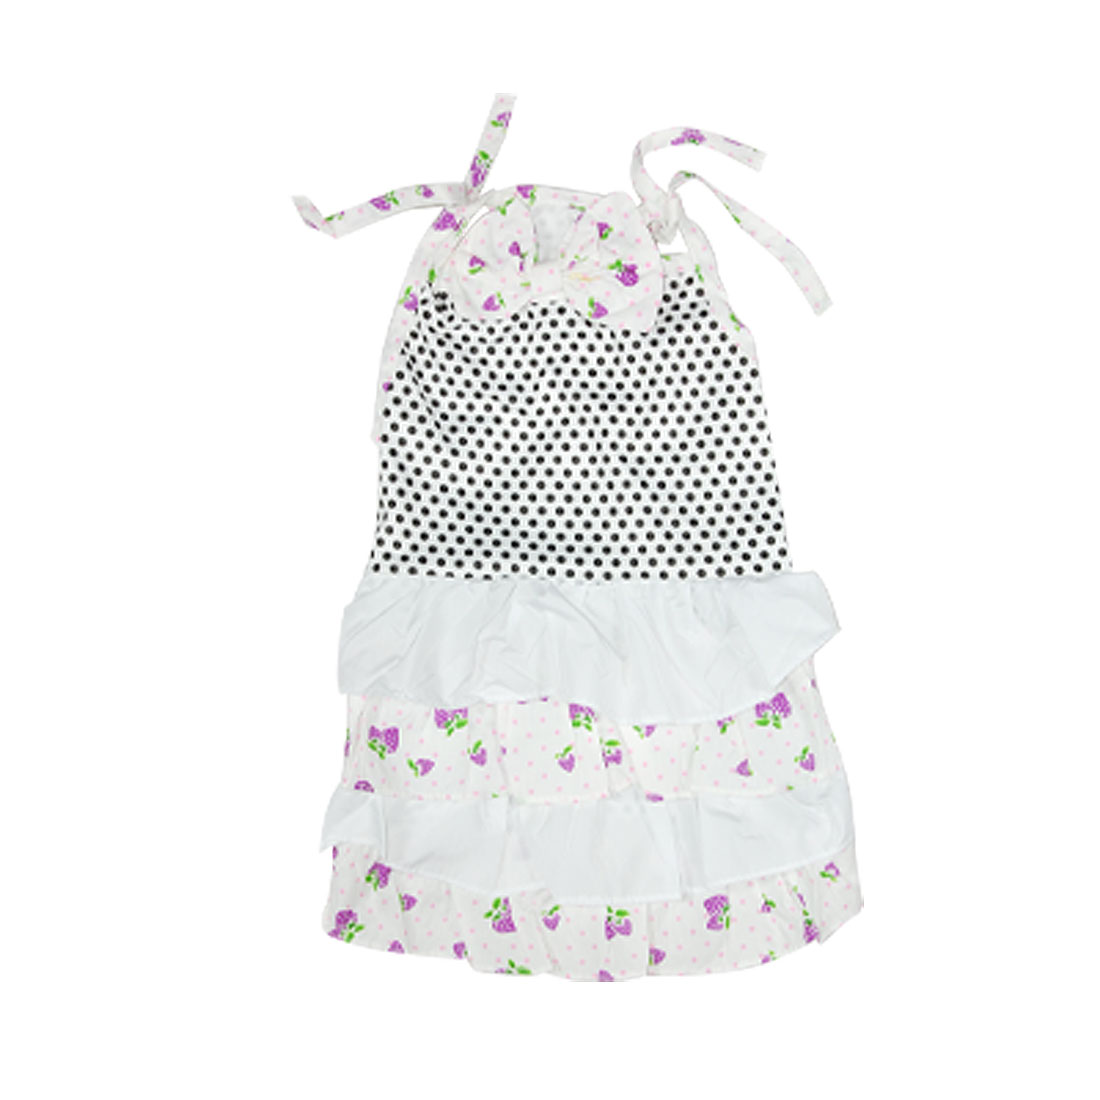 Size L White Summer Pet Yorkie Dog Puppy Cat Apparel Dress Skirts Vest Clothes